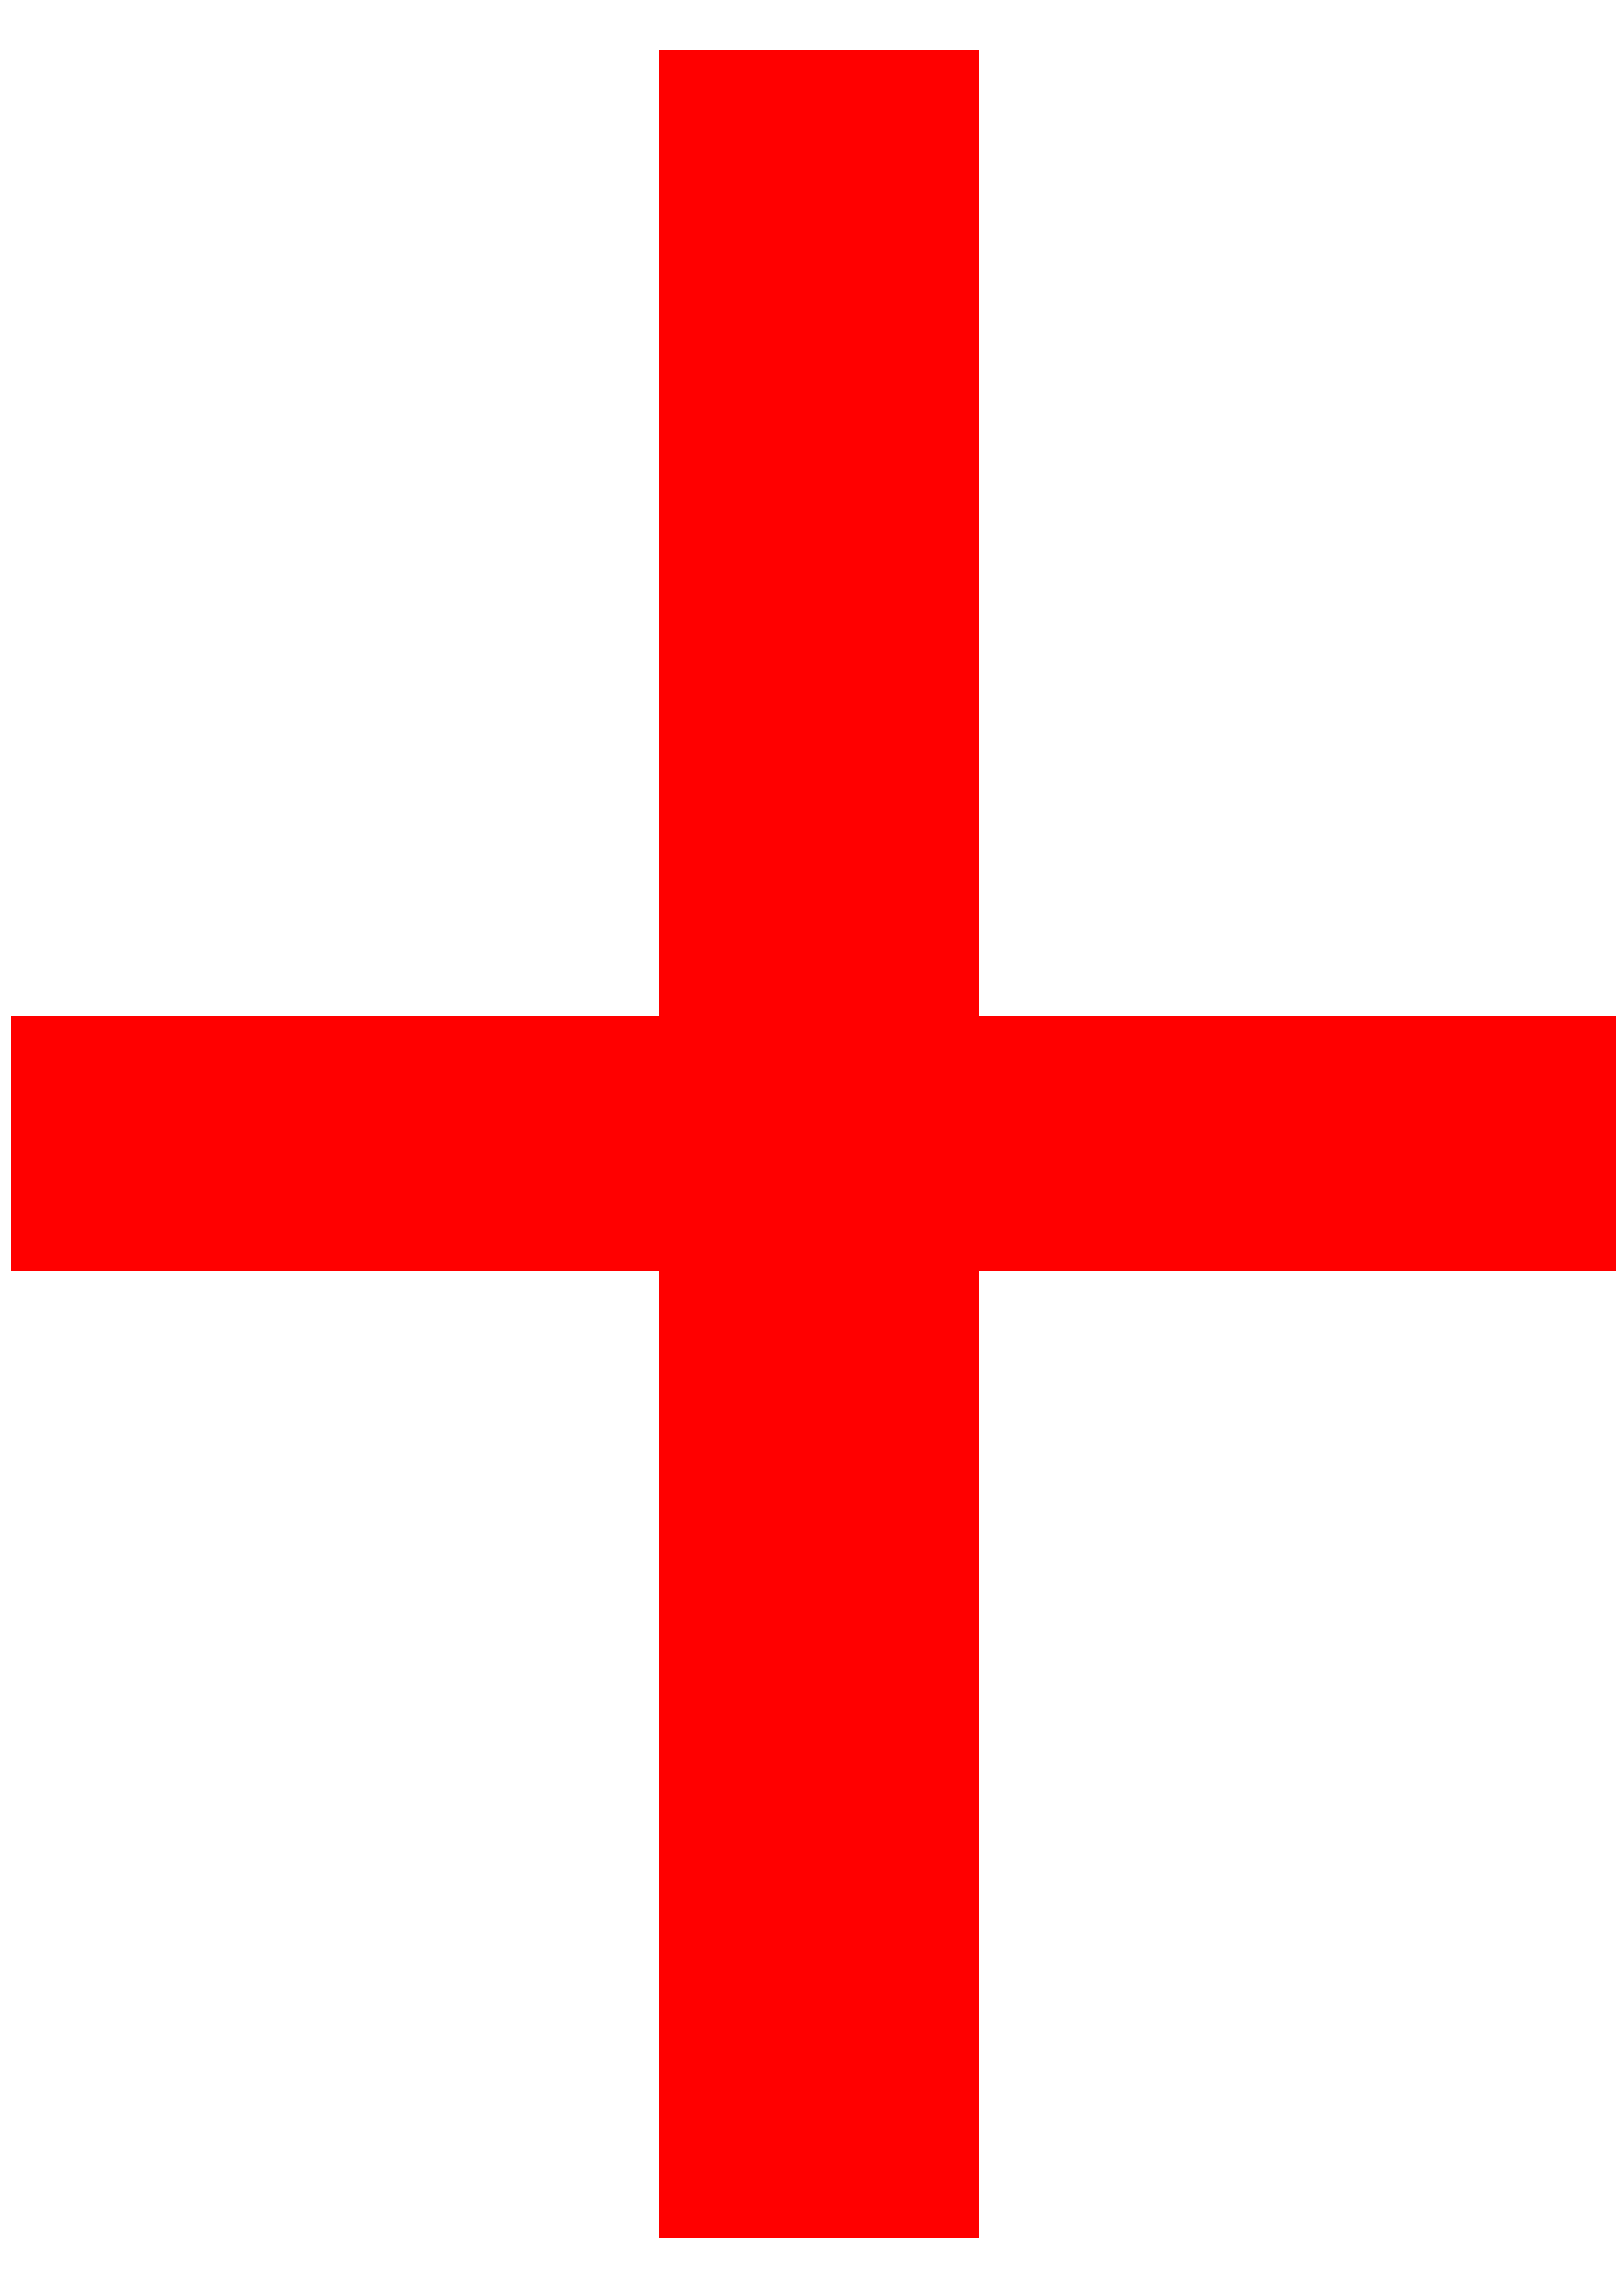 flag of england template